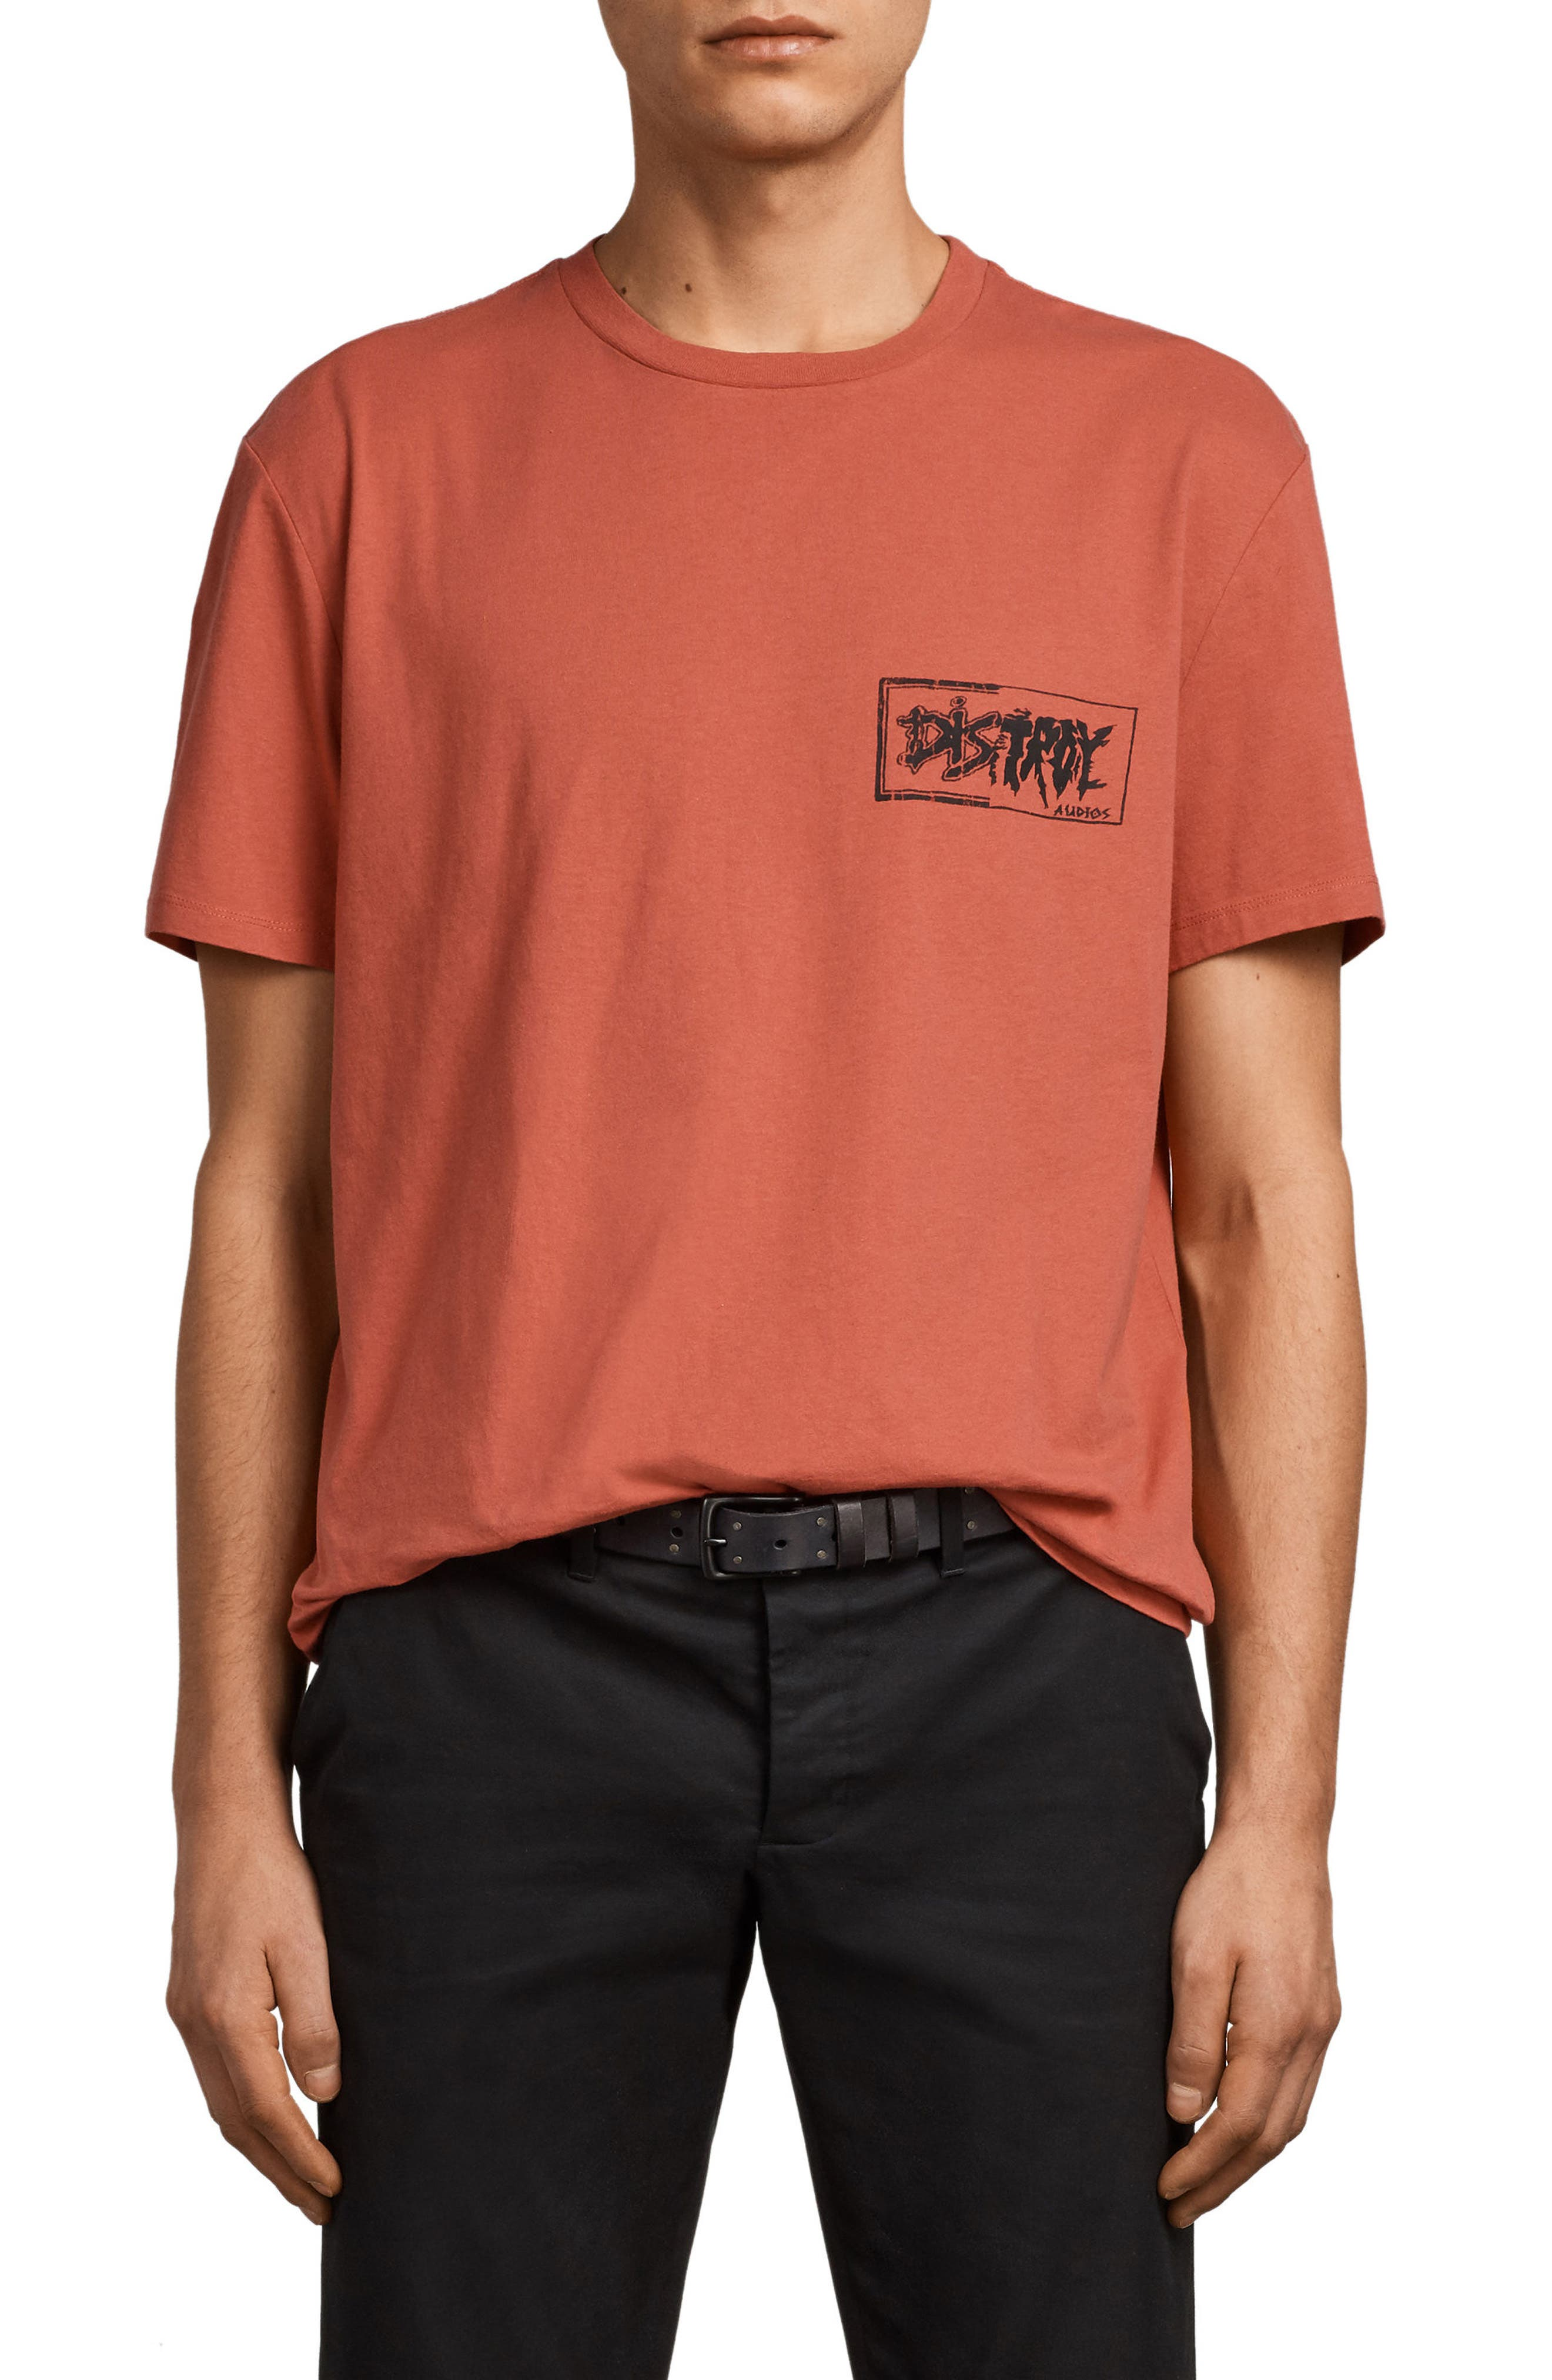 Distroy Graphic T-Shirt,                             Main thumbnail 1, color,                             Block Red/ Black